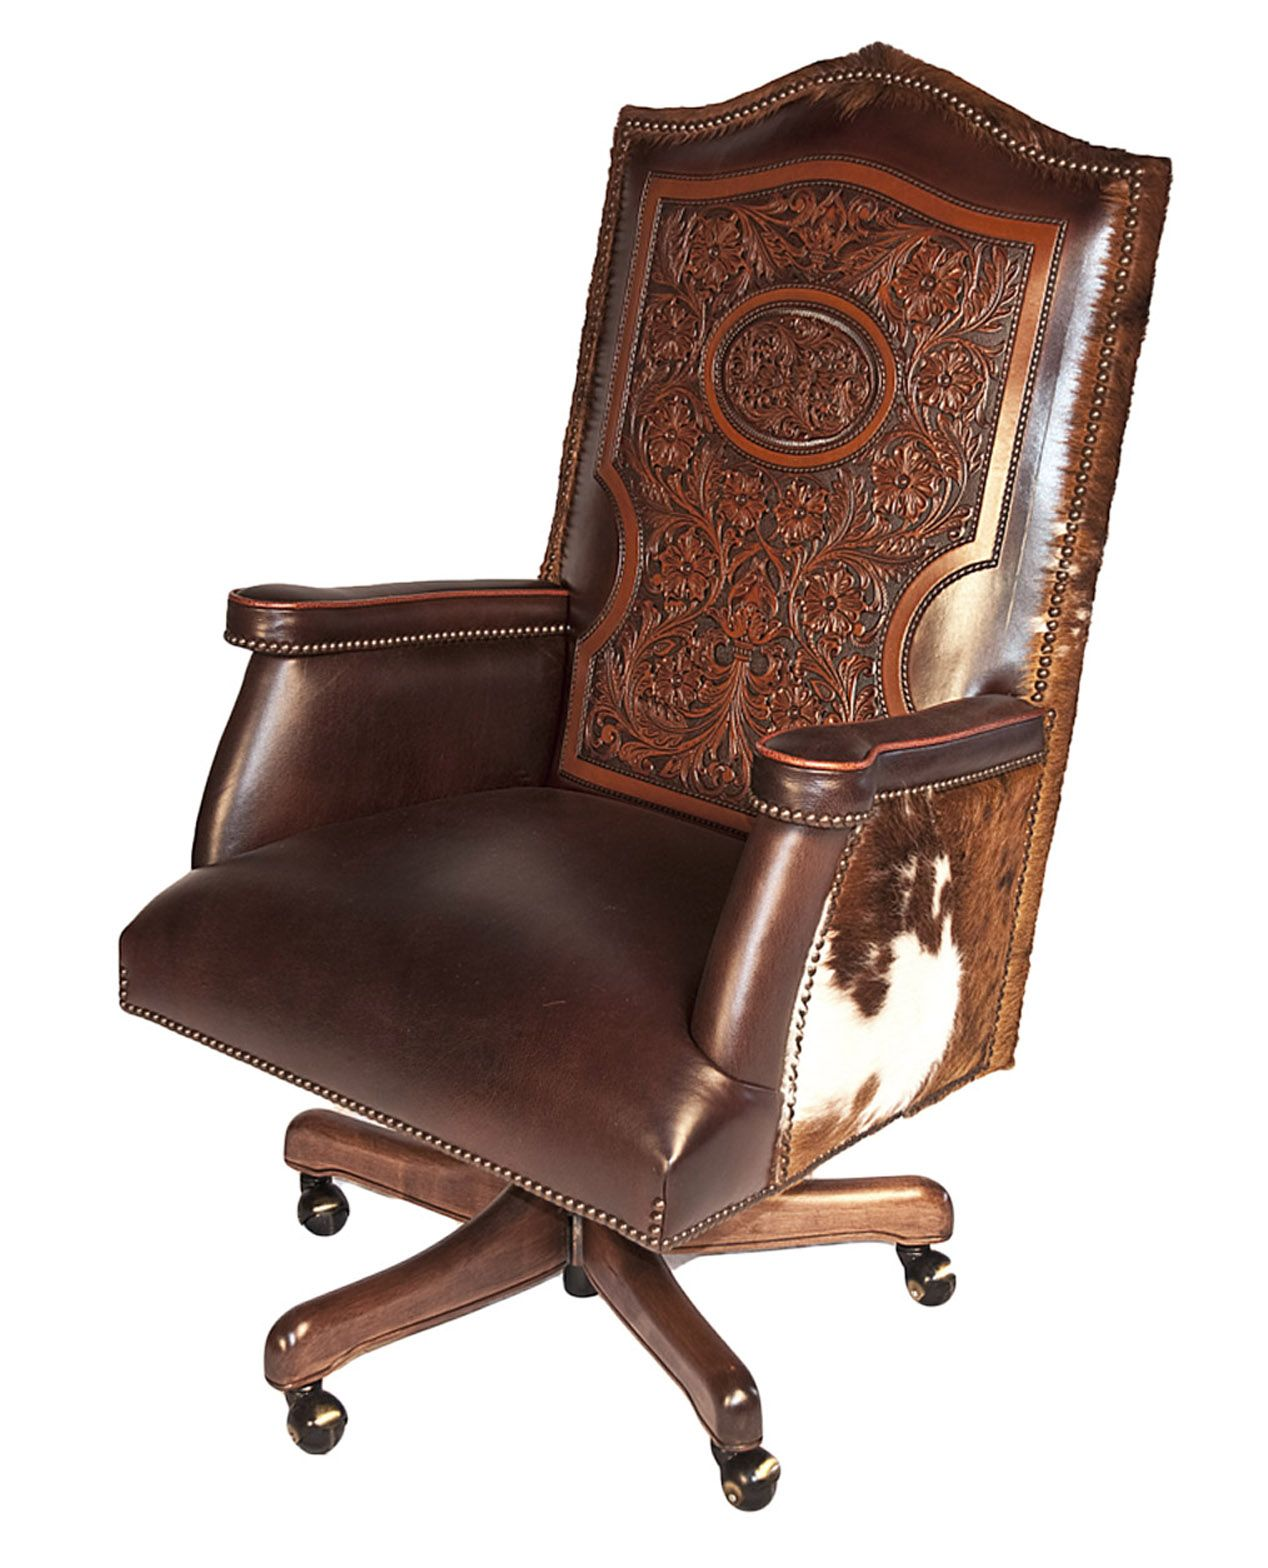 Hair On Hide Office Chair Cheap Pool Chaise Lounge Chairs Cattle Baron Desk With And Hand Tooled Dream